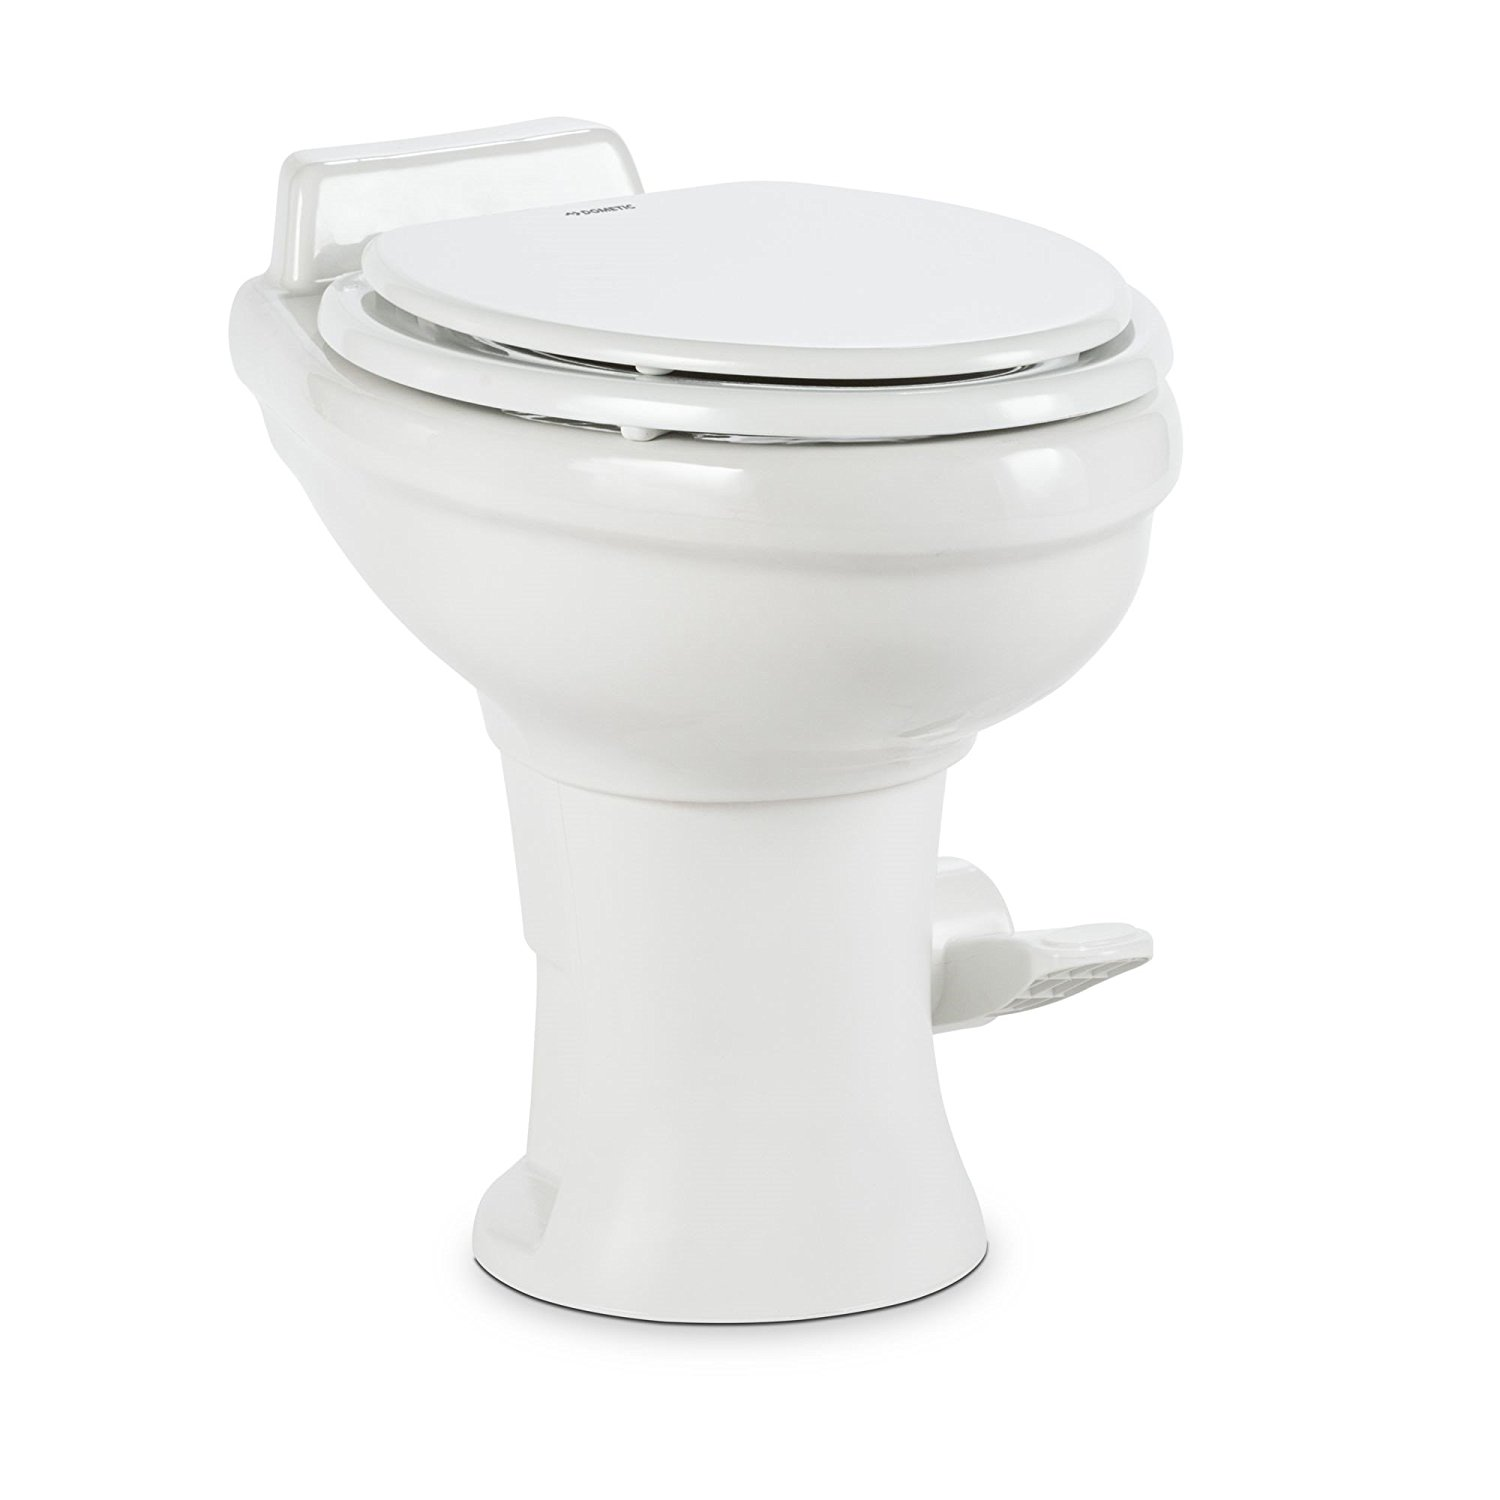 Dometic 320 Series Standard Height Toilet w/Hand Spray - ceramic